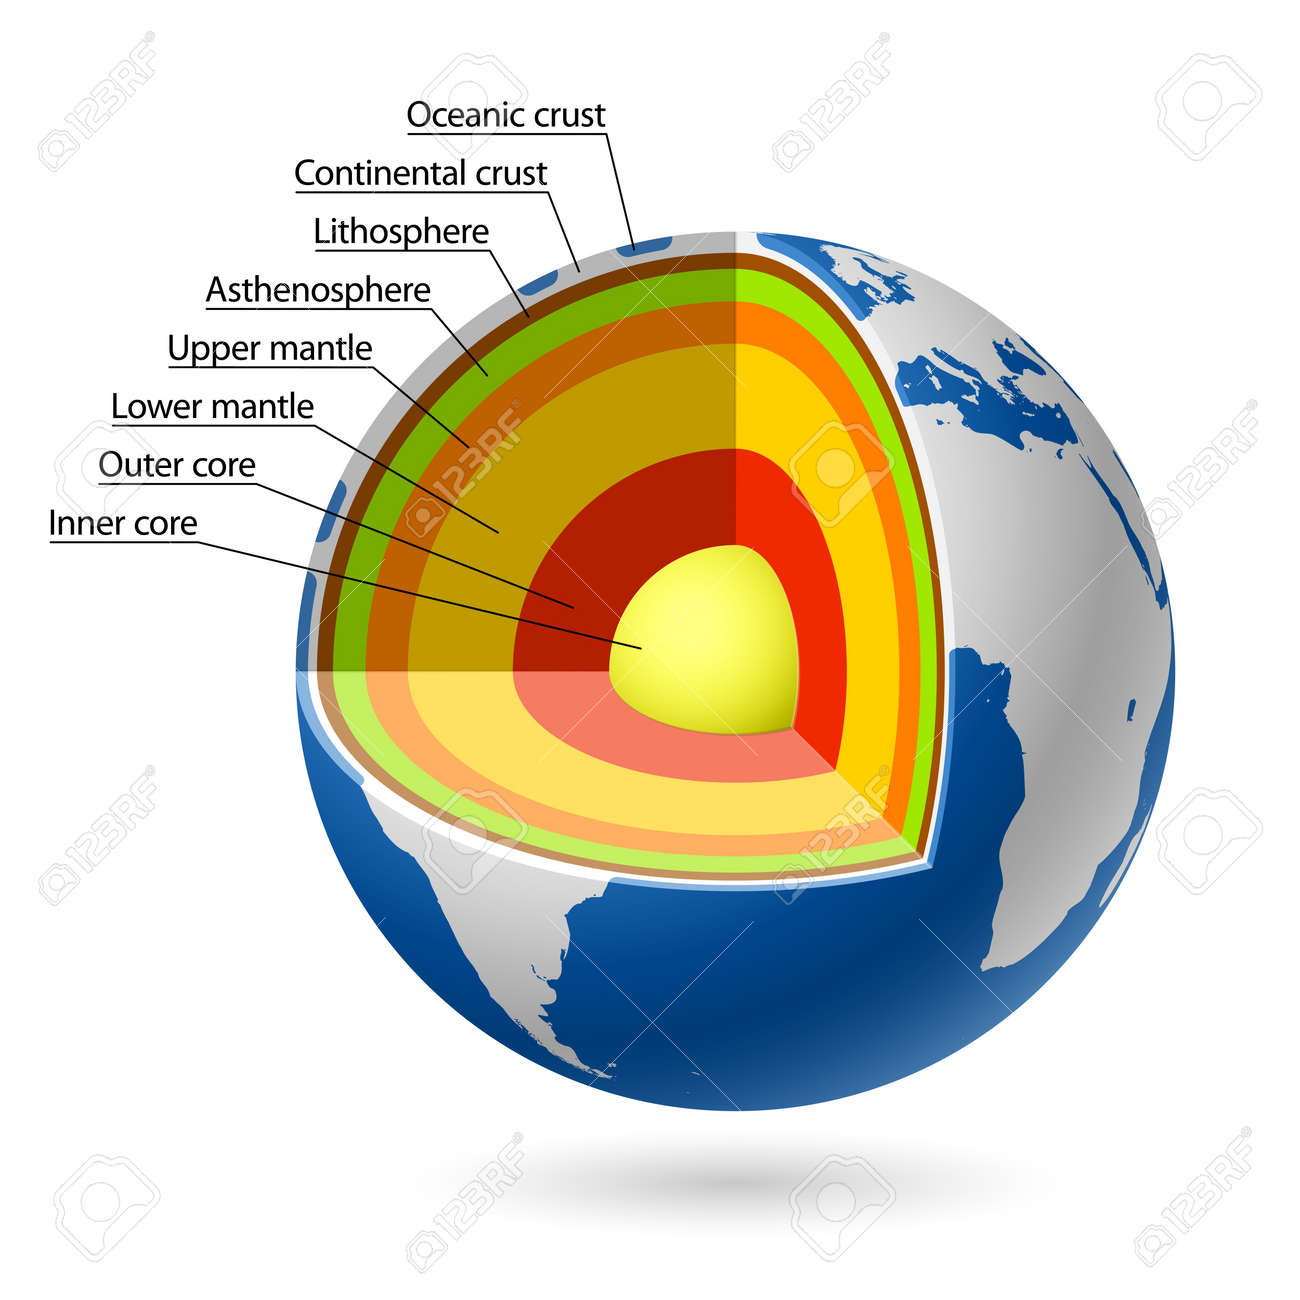 Earth layers royalty free cliparts vectors and stock illustration earth layers ccuart Choice Image